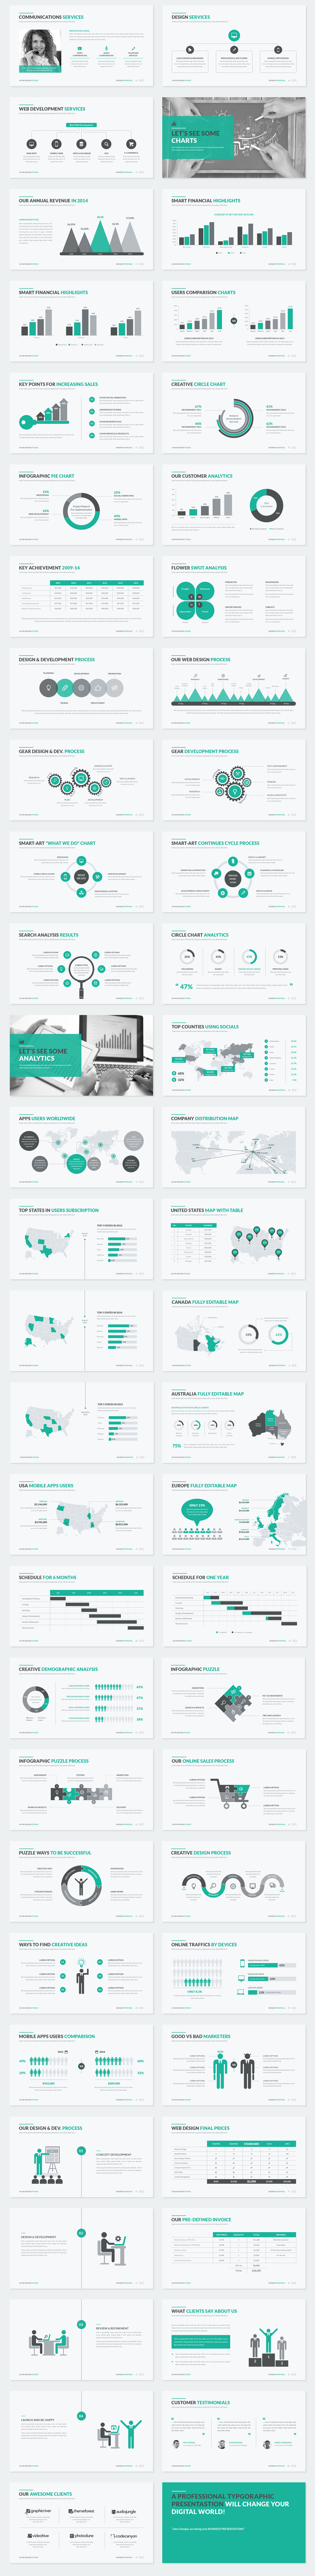 Business proposal powerpoint template on behance business proposal powerpoint template is a clean simple and unique business presentation it contains a lot of handmade diagrams graphs infographics and toneelgroepblik Choice Image